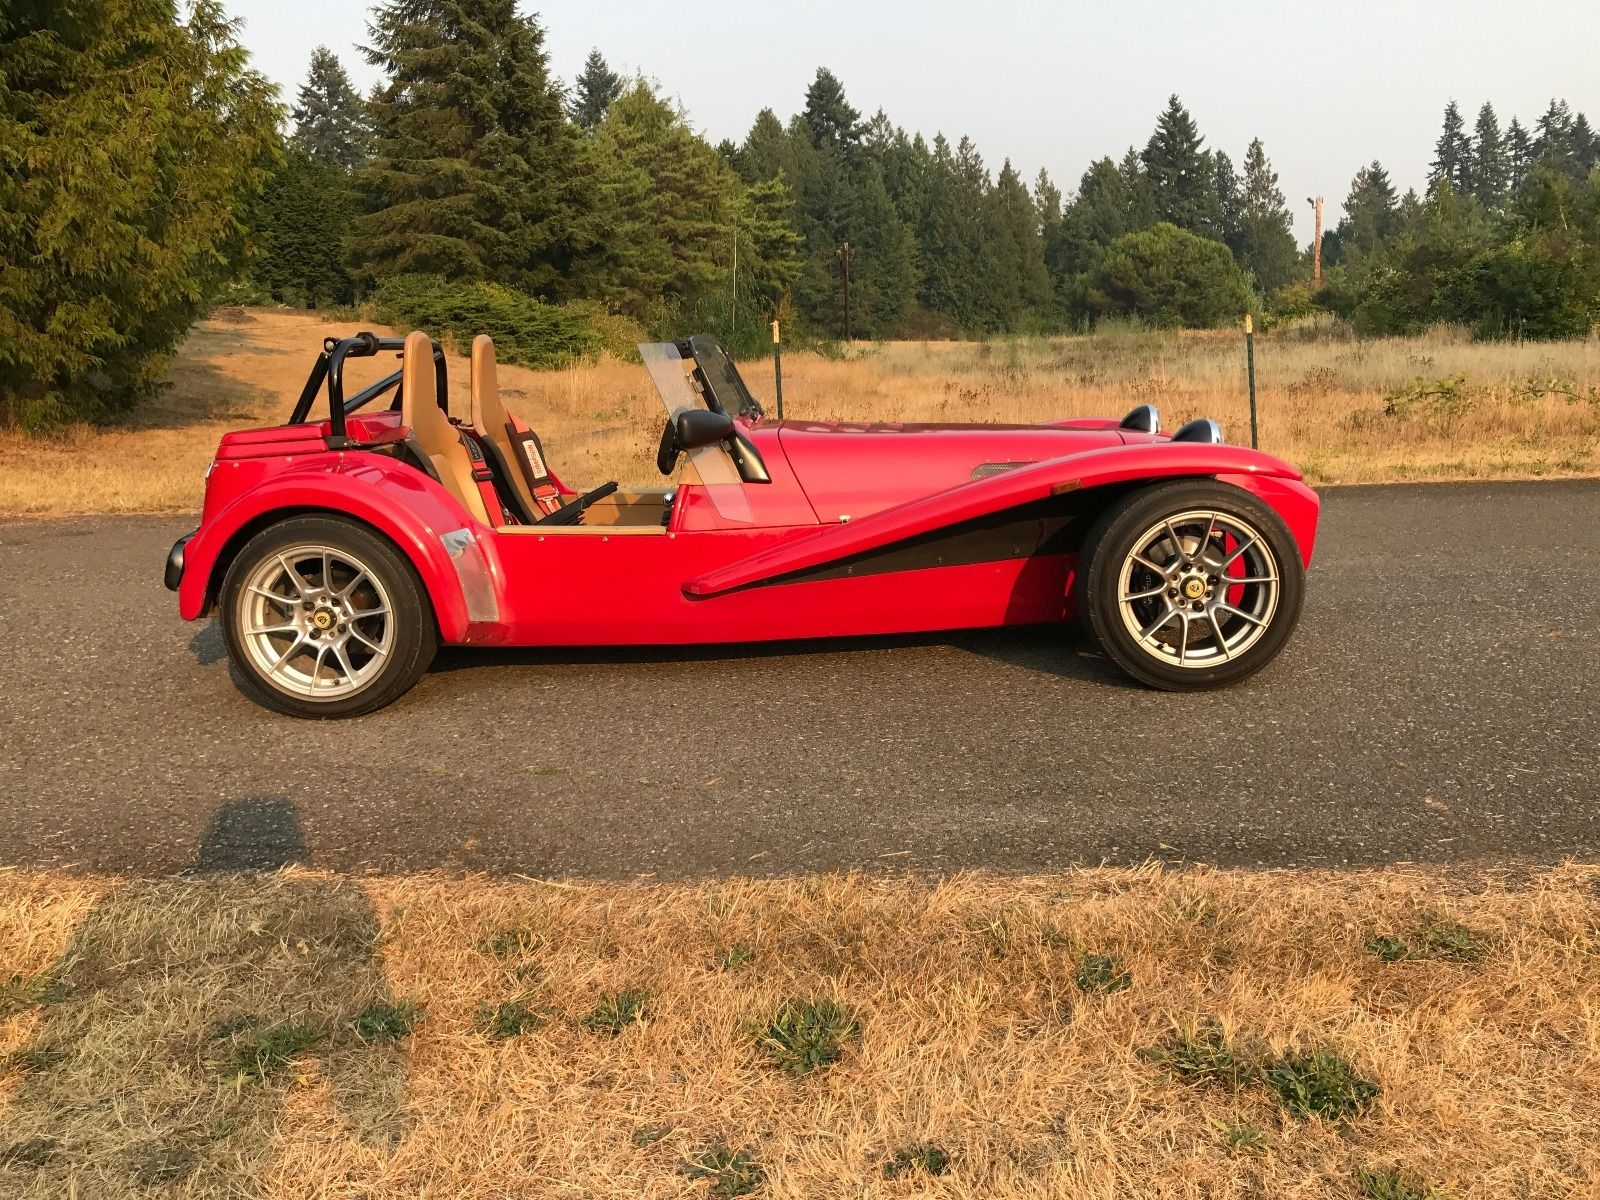 Used Lotus 7 Replica Cars Sale.Tuned Engine 1965 Westfield SEiW ...